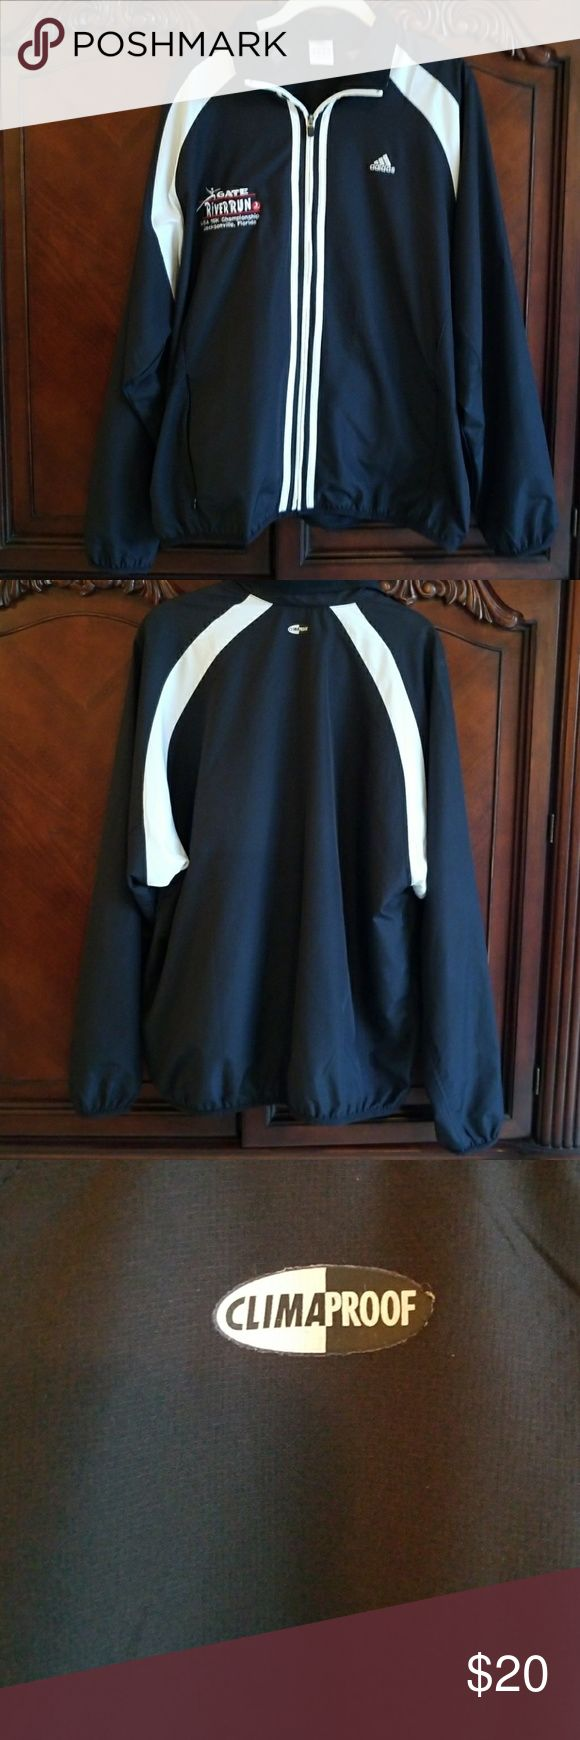 Men's Adidas Clima Proof Athletic Jacket Mens size medium but runs big. Probably worn once great condition! adidas Jackets & Coats Performance Jackets